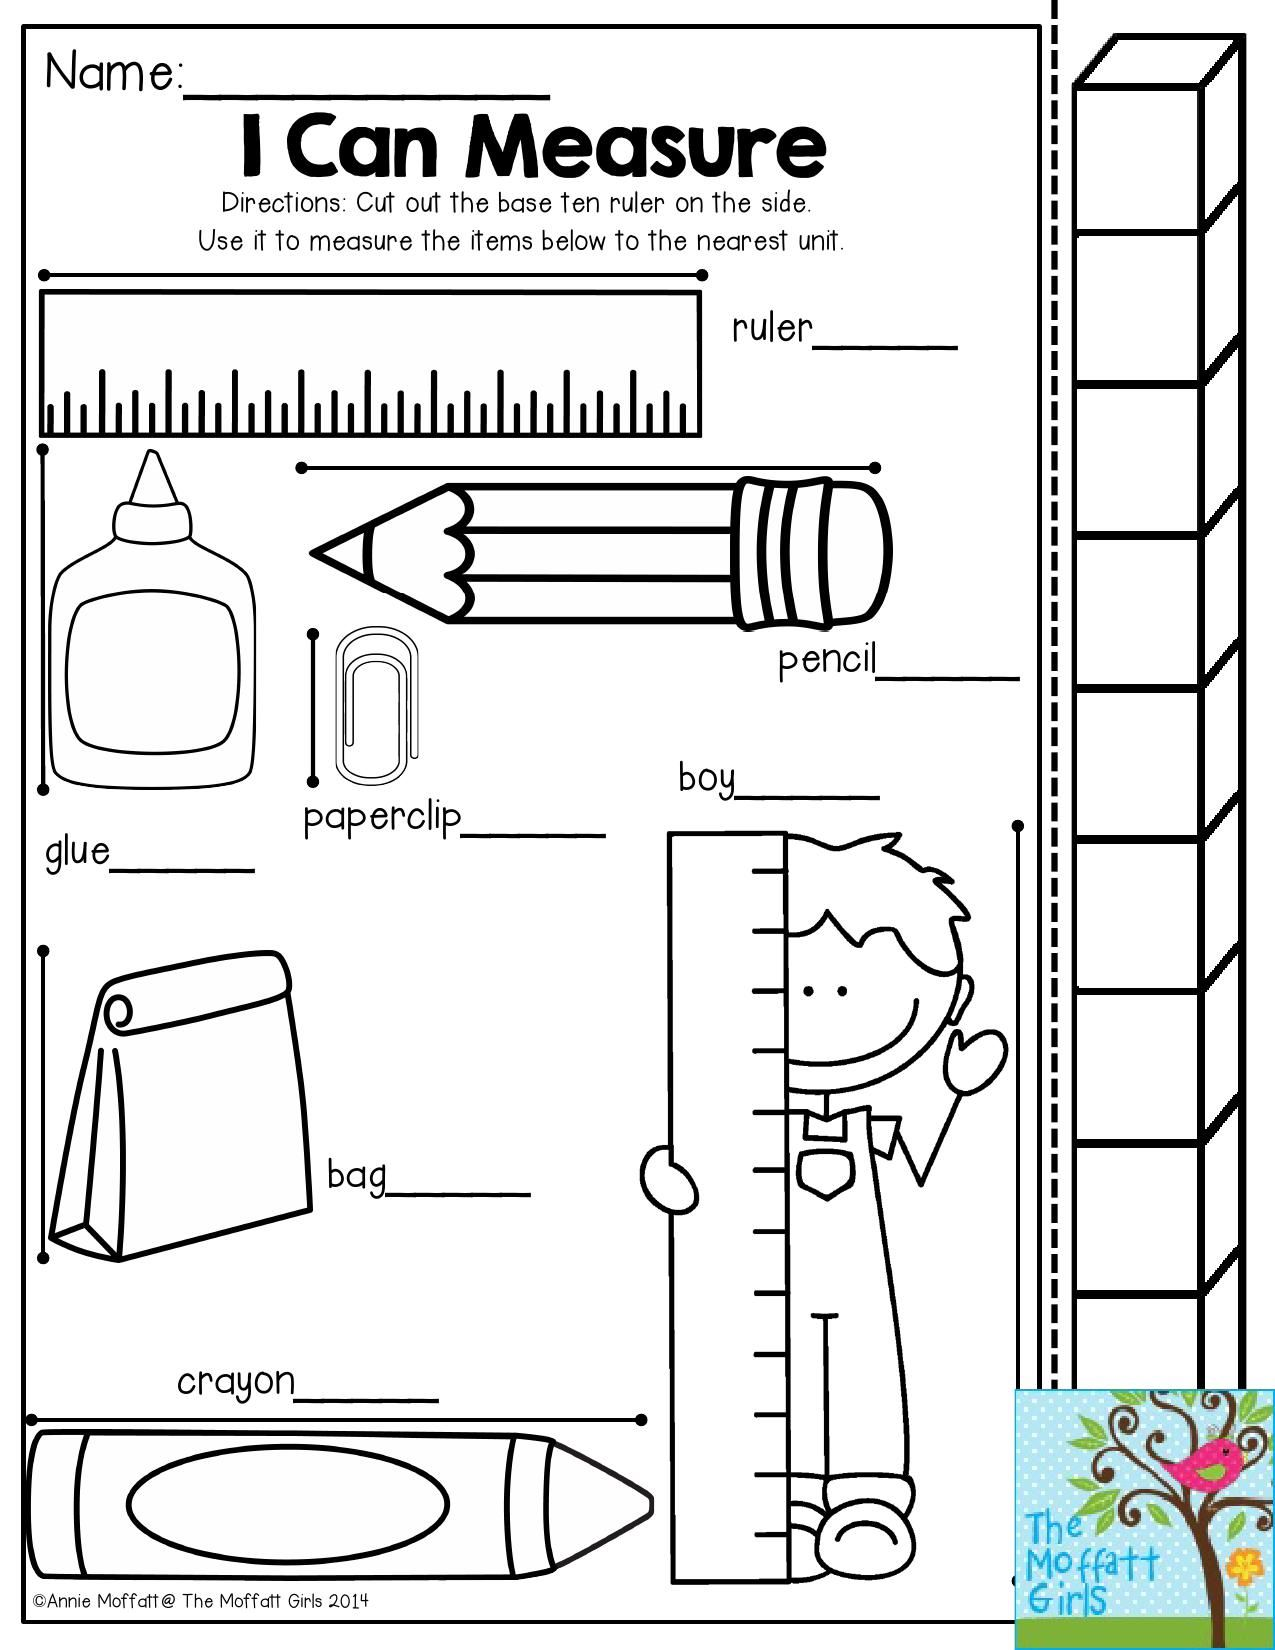 I Can Measure! Have students use the measuring stick to